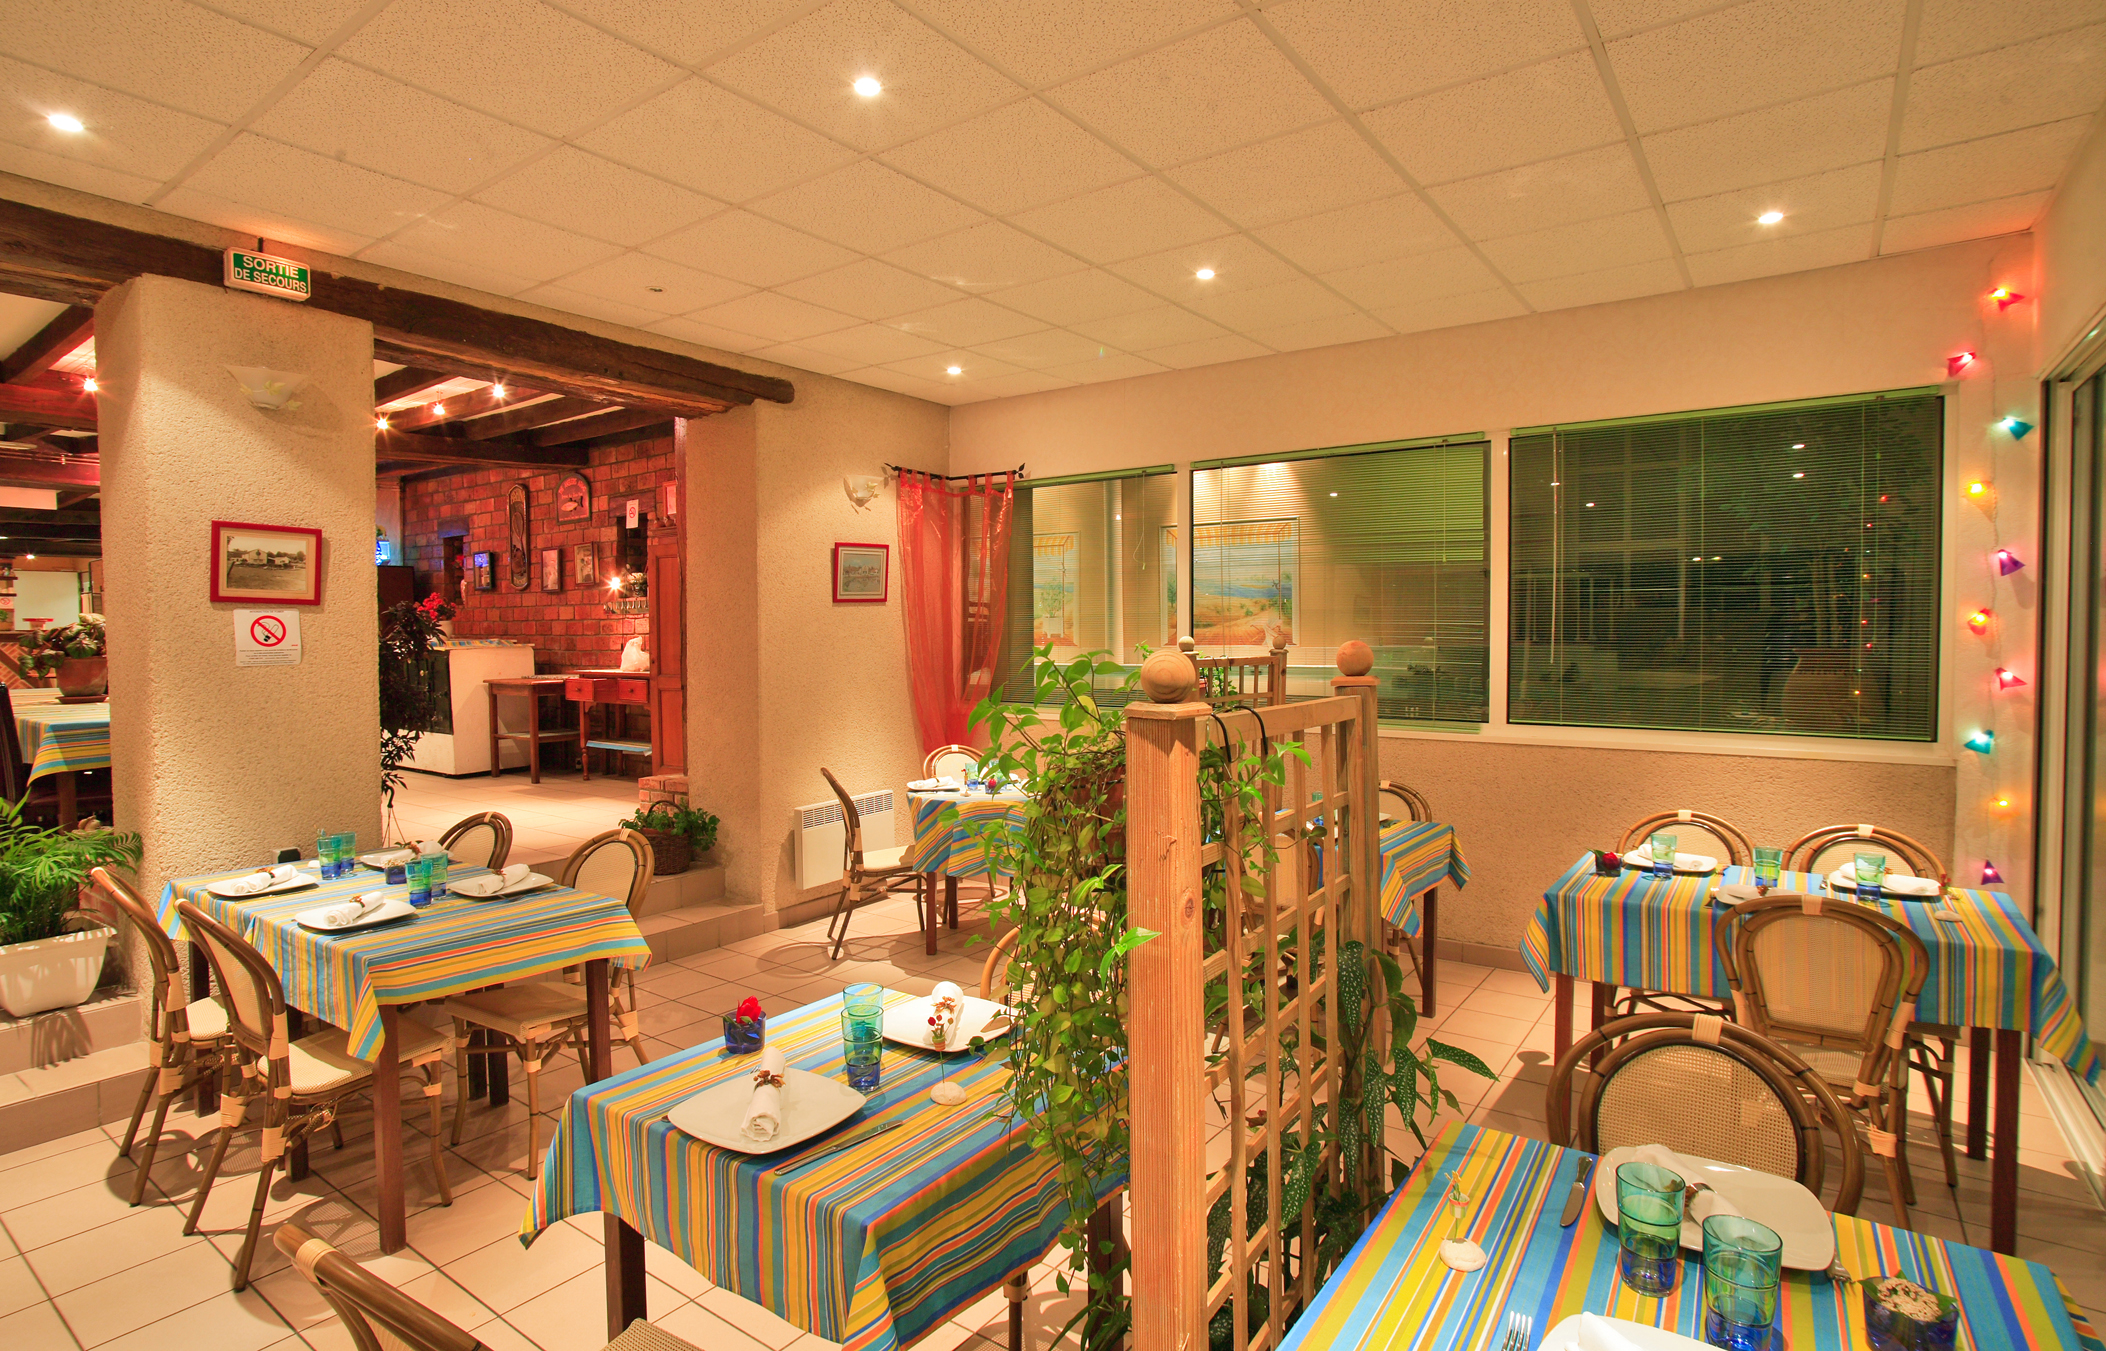 Office de tourisme de gien restaurant du bardelet - Office de tourisme de gien ...